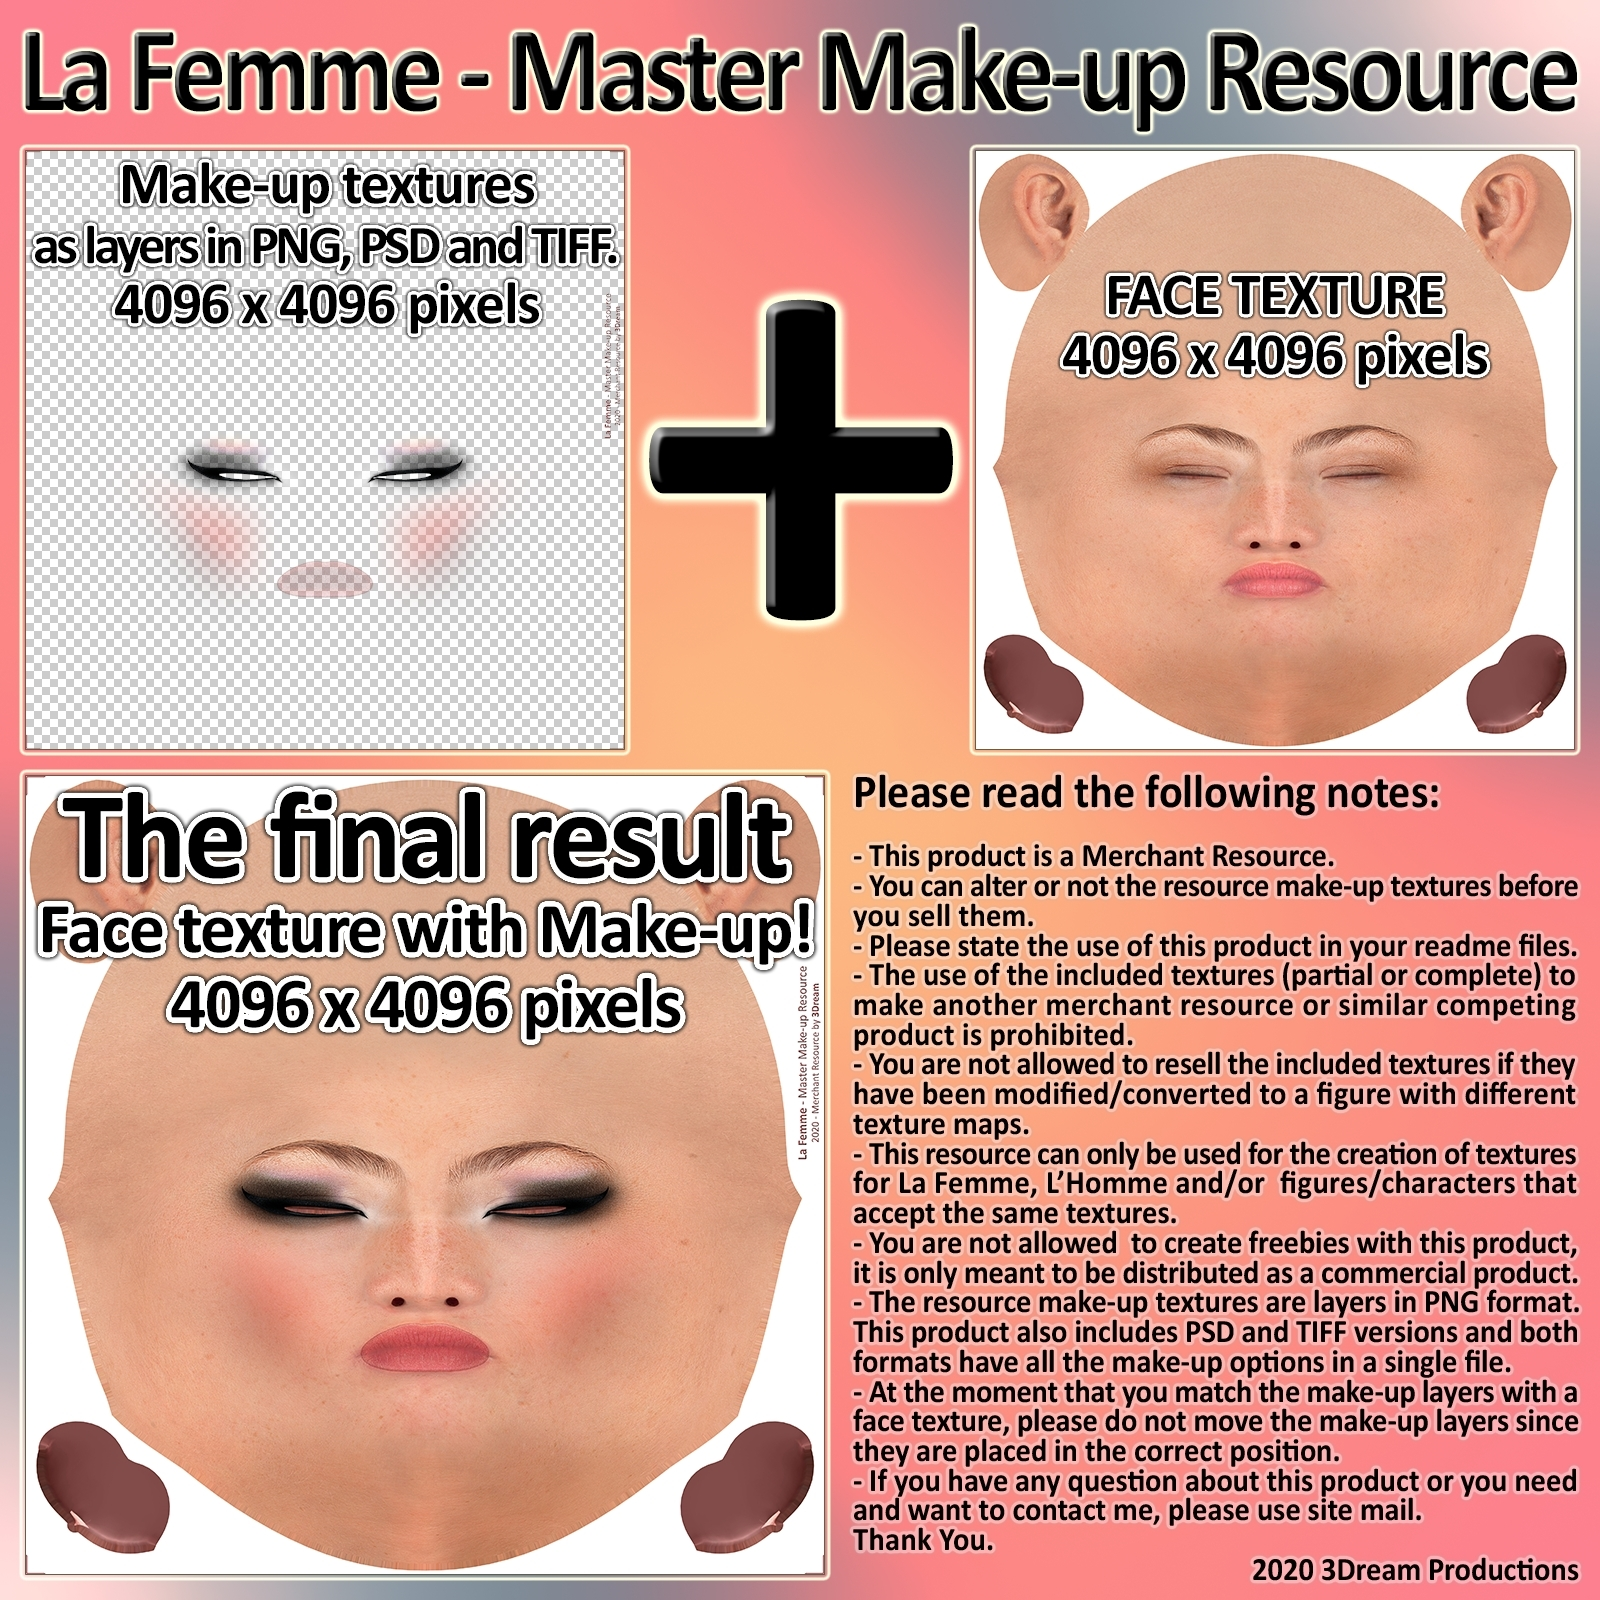 La Femme - Master Make-up Resource by 3Dream